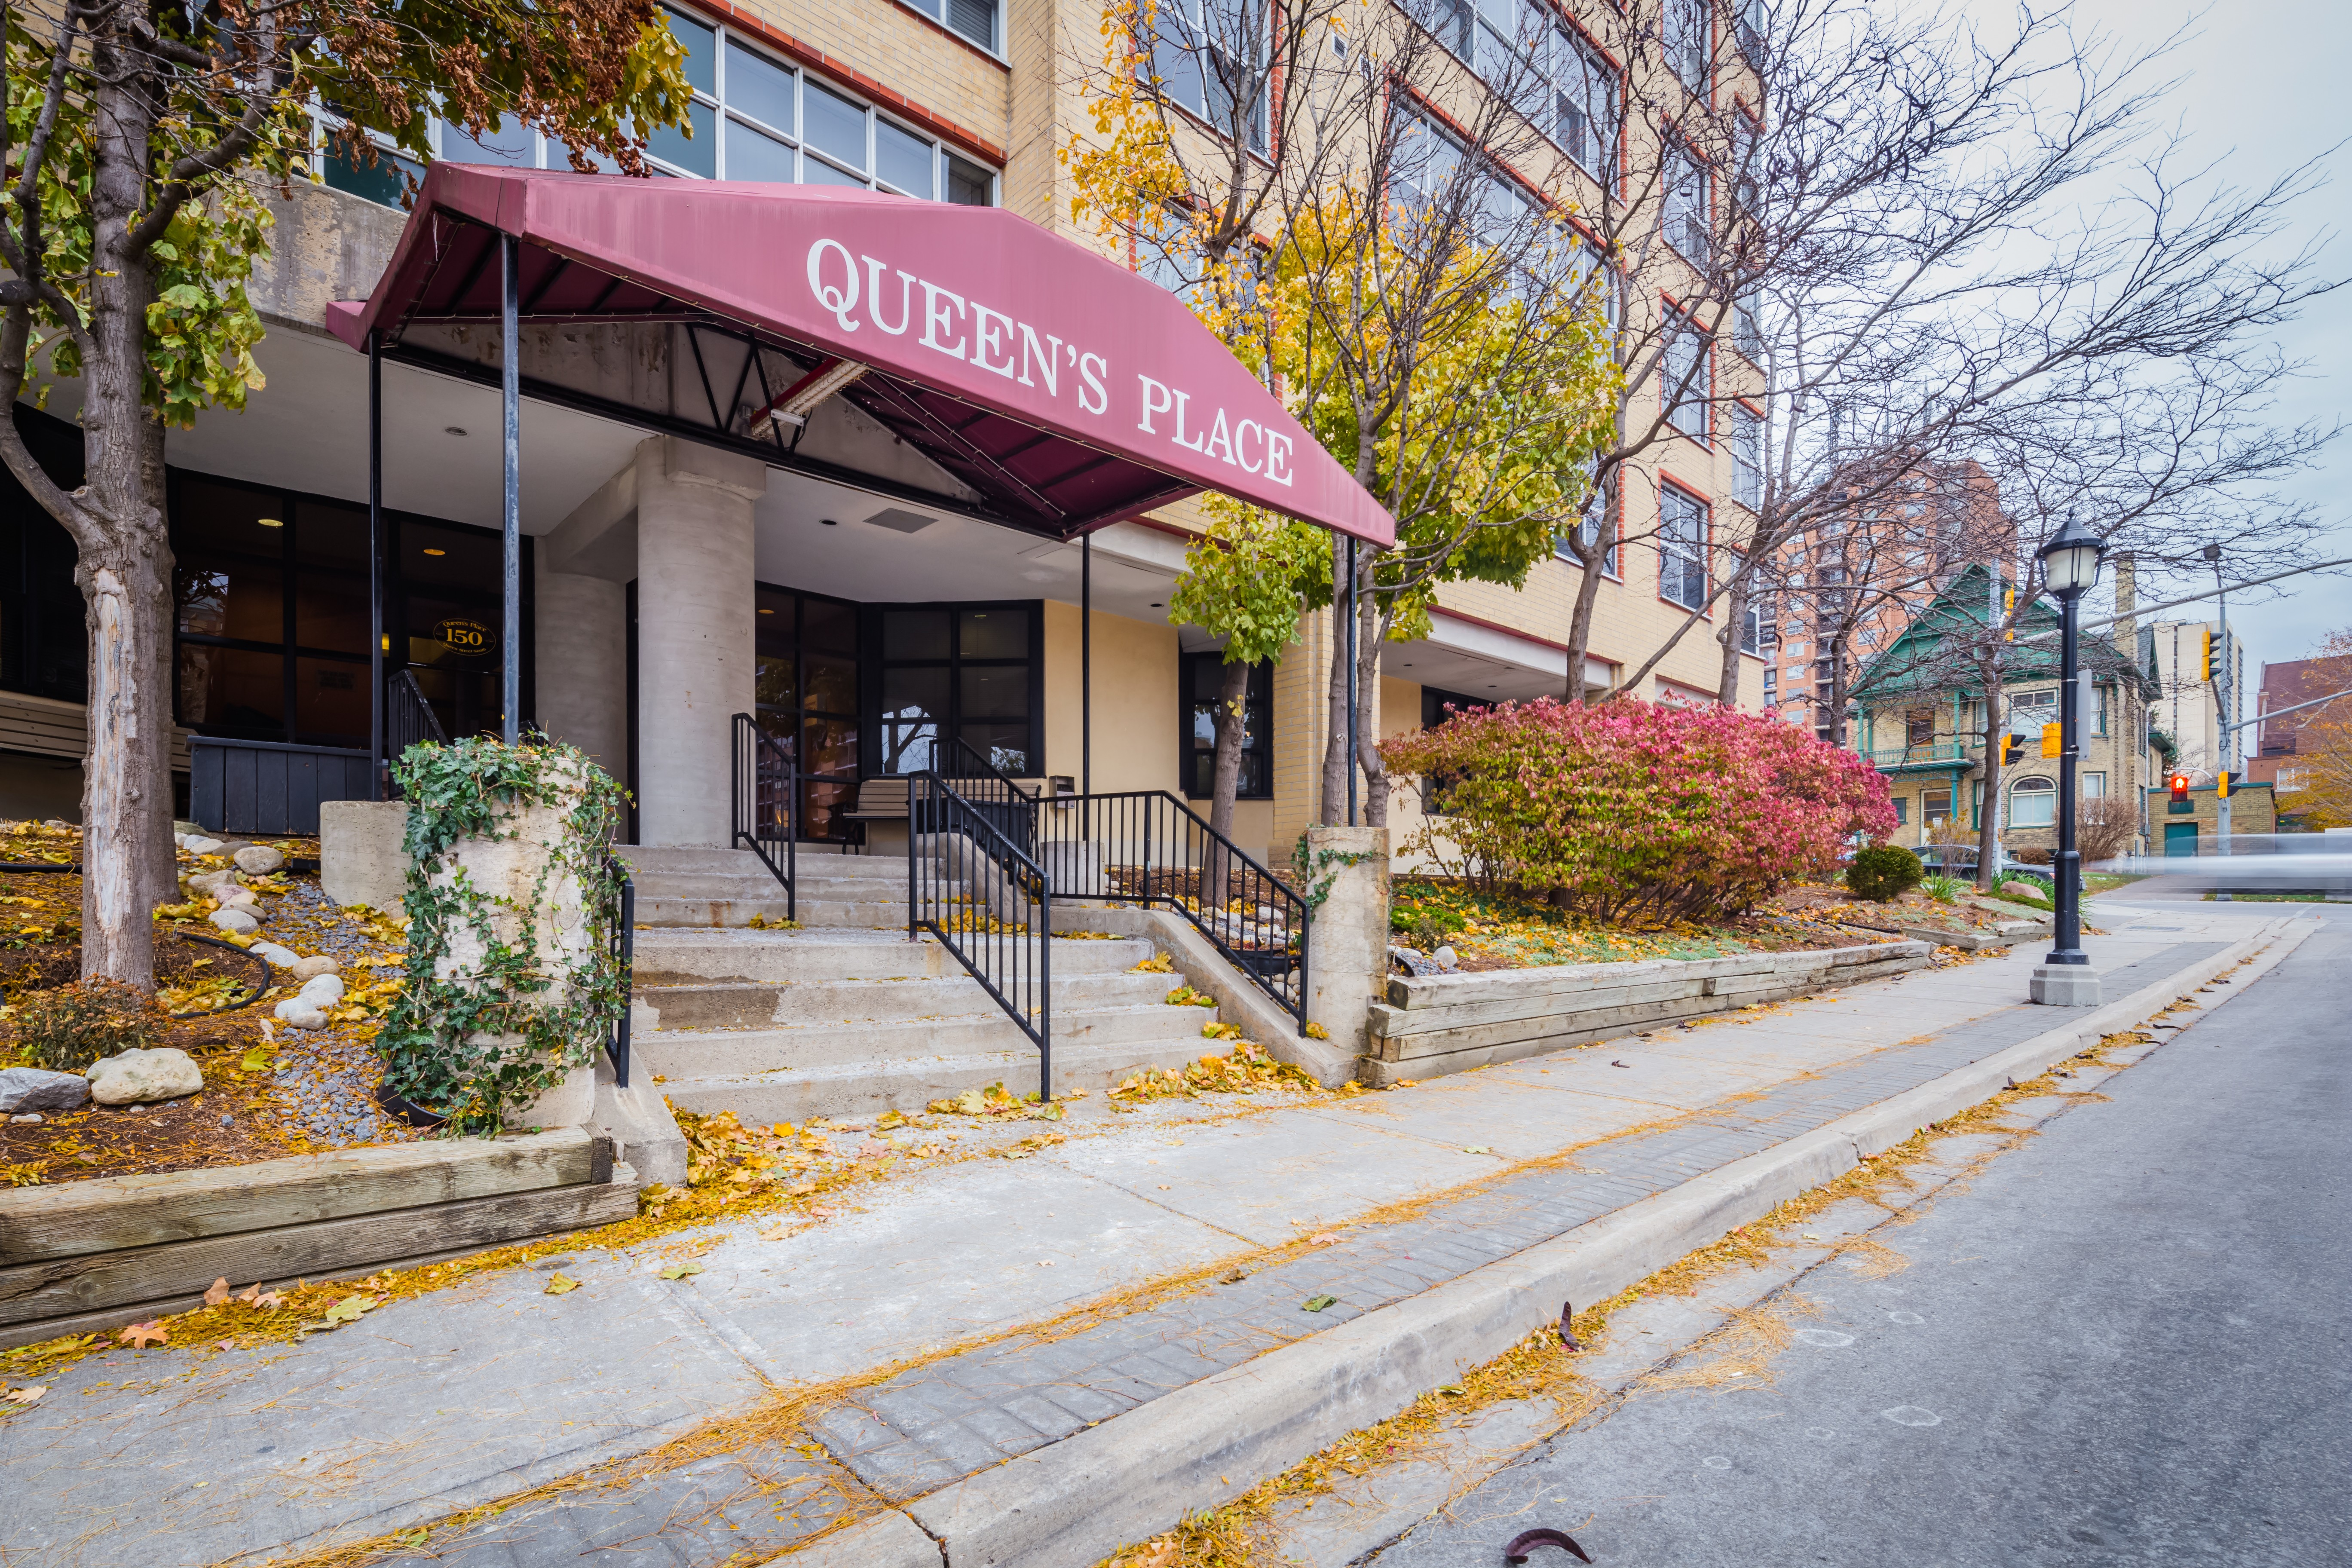 Queen's Place at 150 Queen St S, Kitchener 0